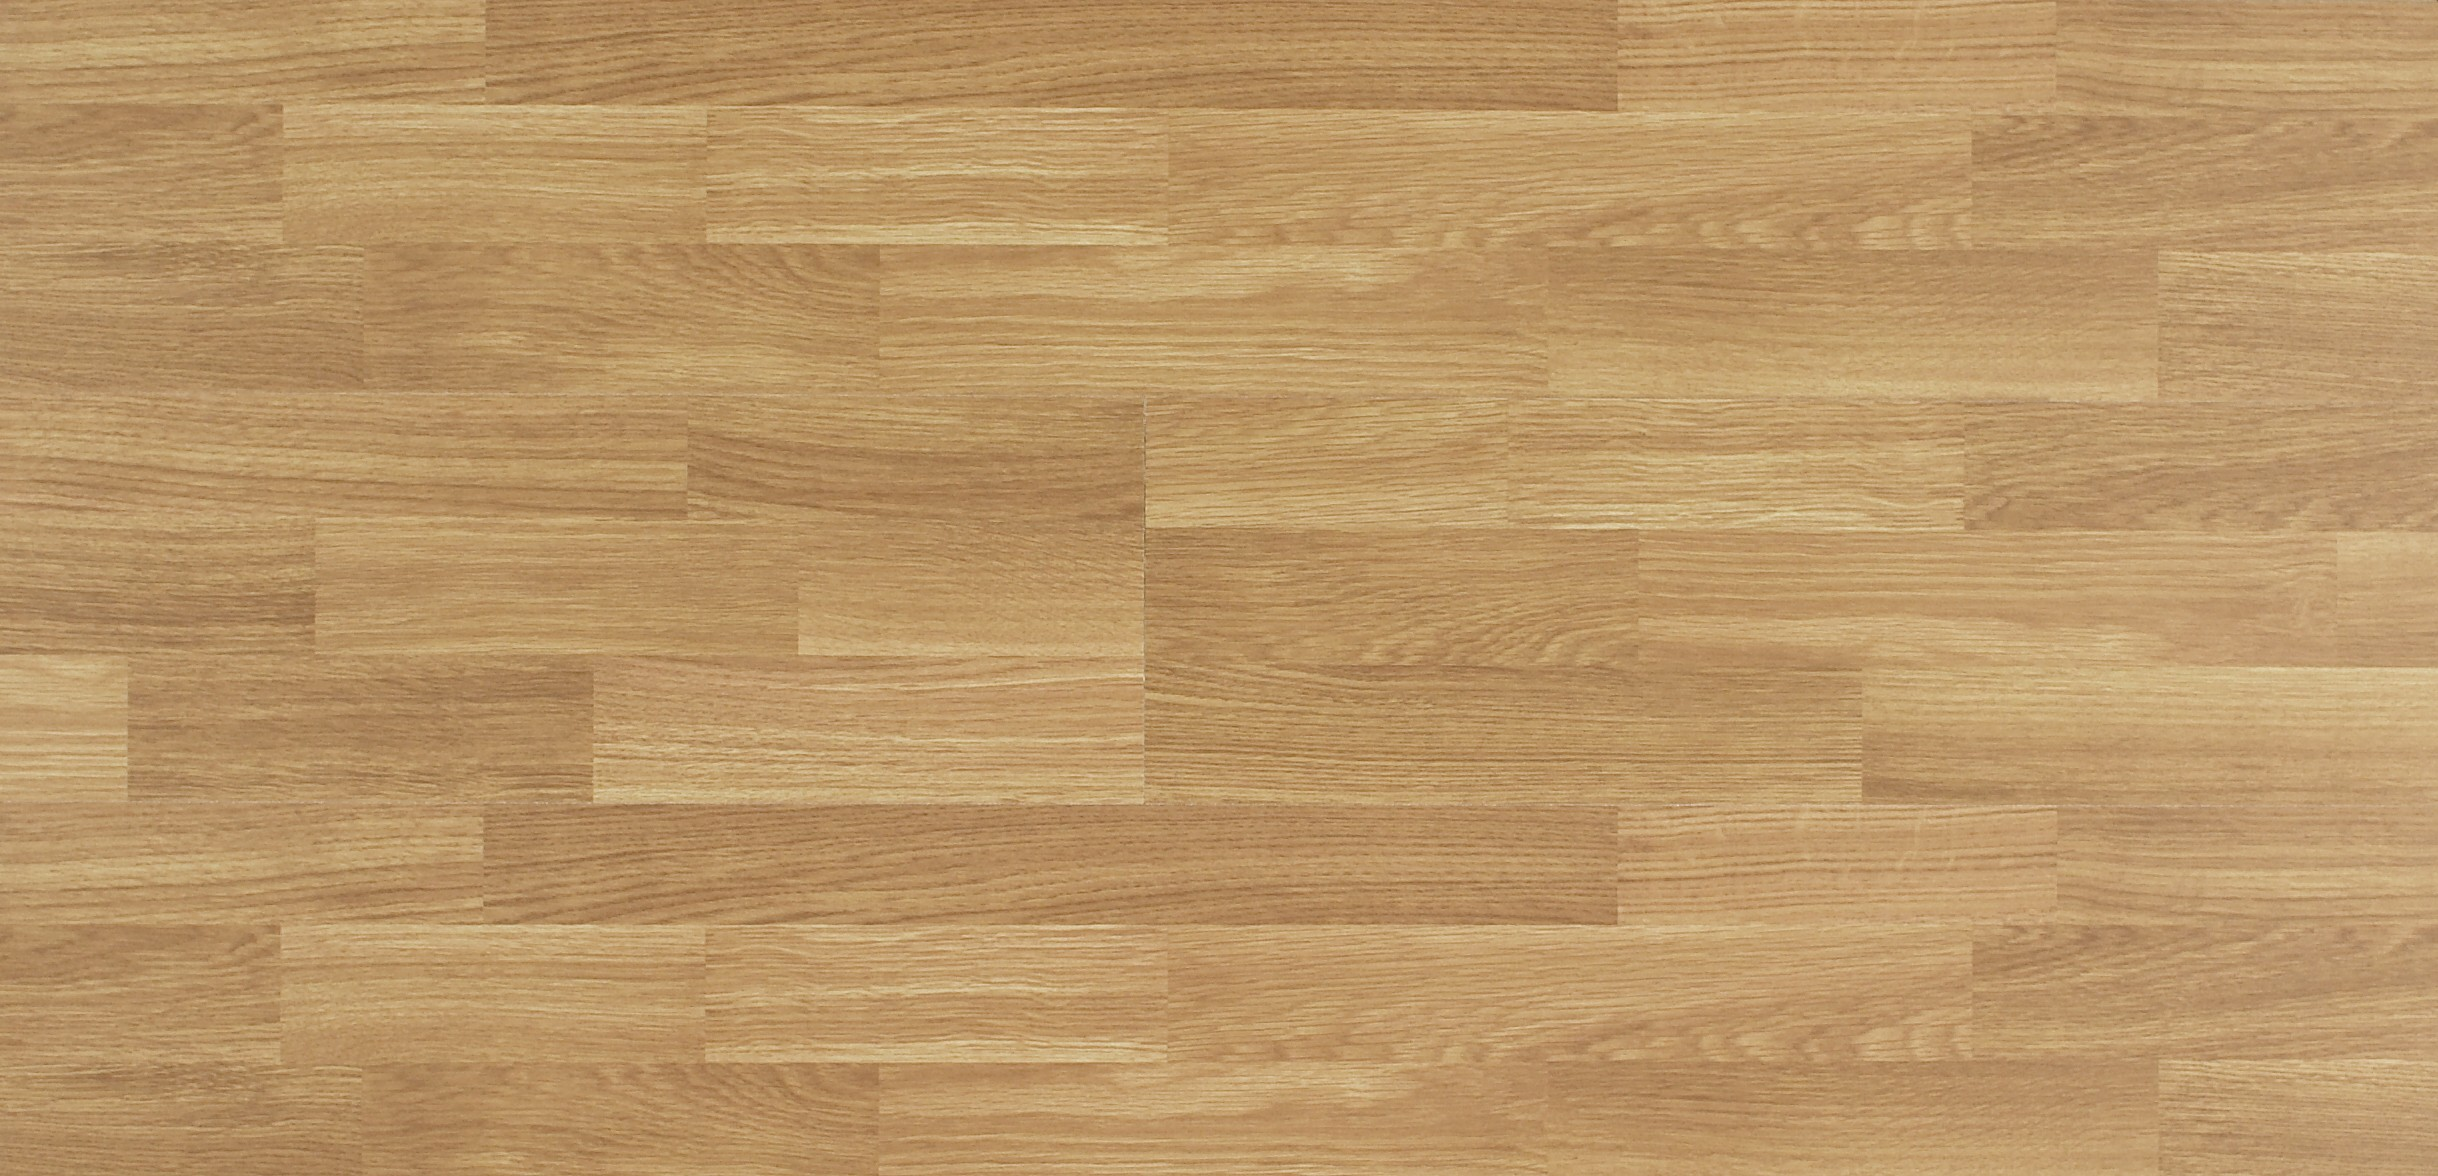 Wood Floor Tile Tile And Wood Floor Cozy Home Design With Beautiful Floor Transition Laminate